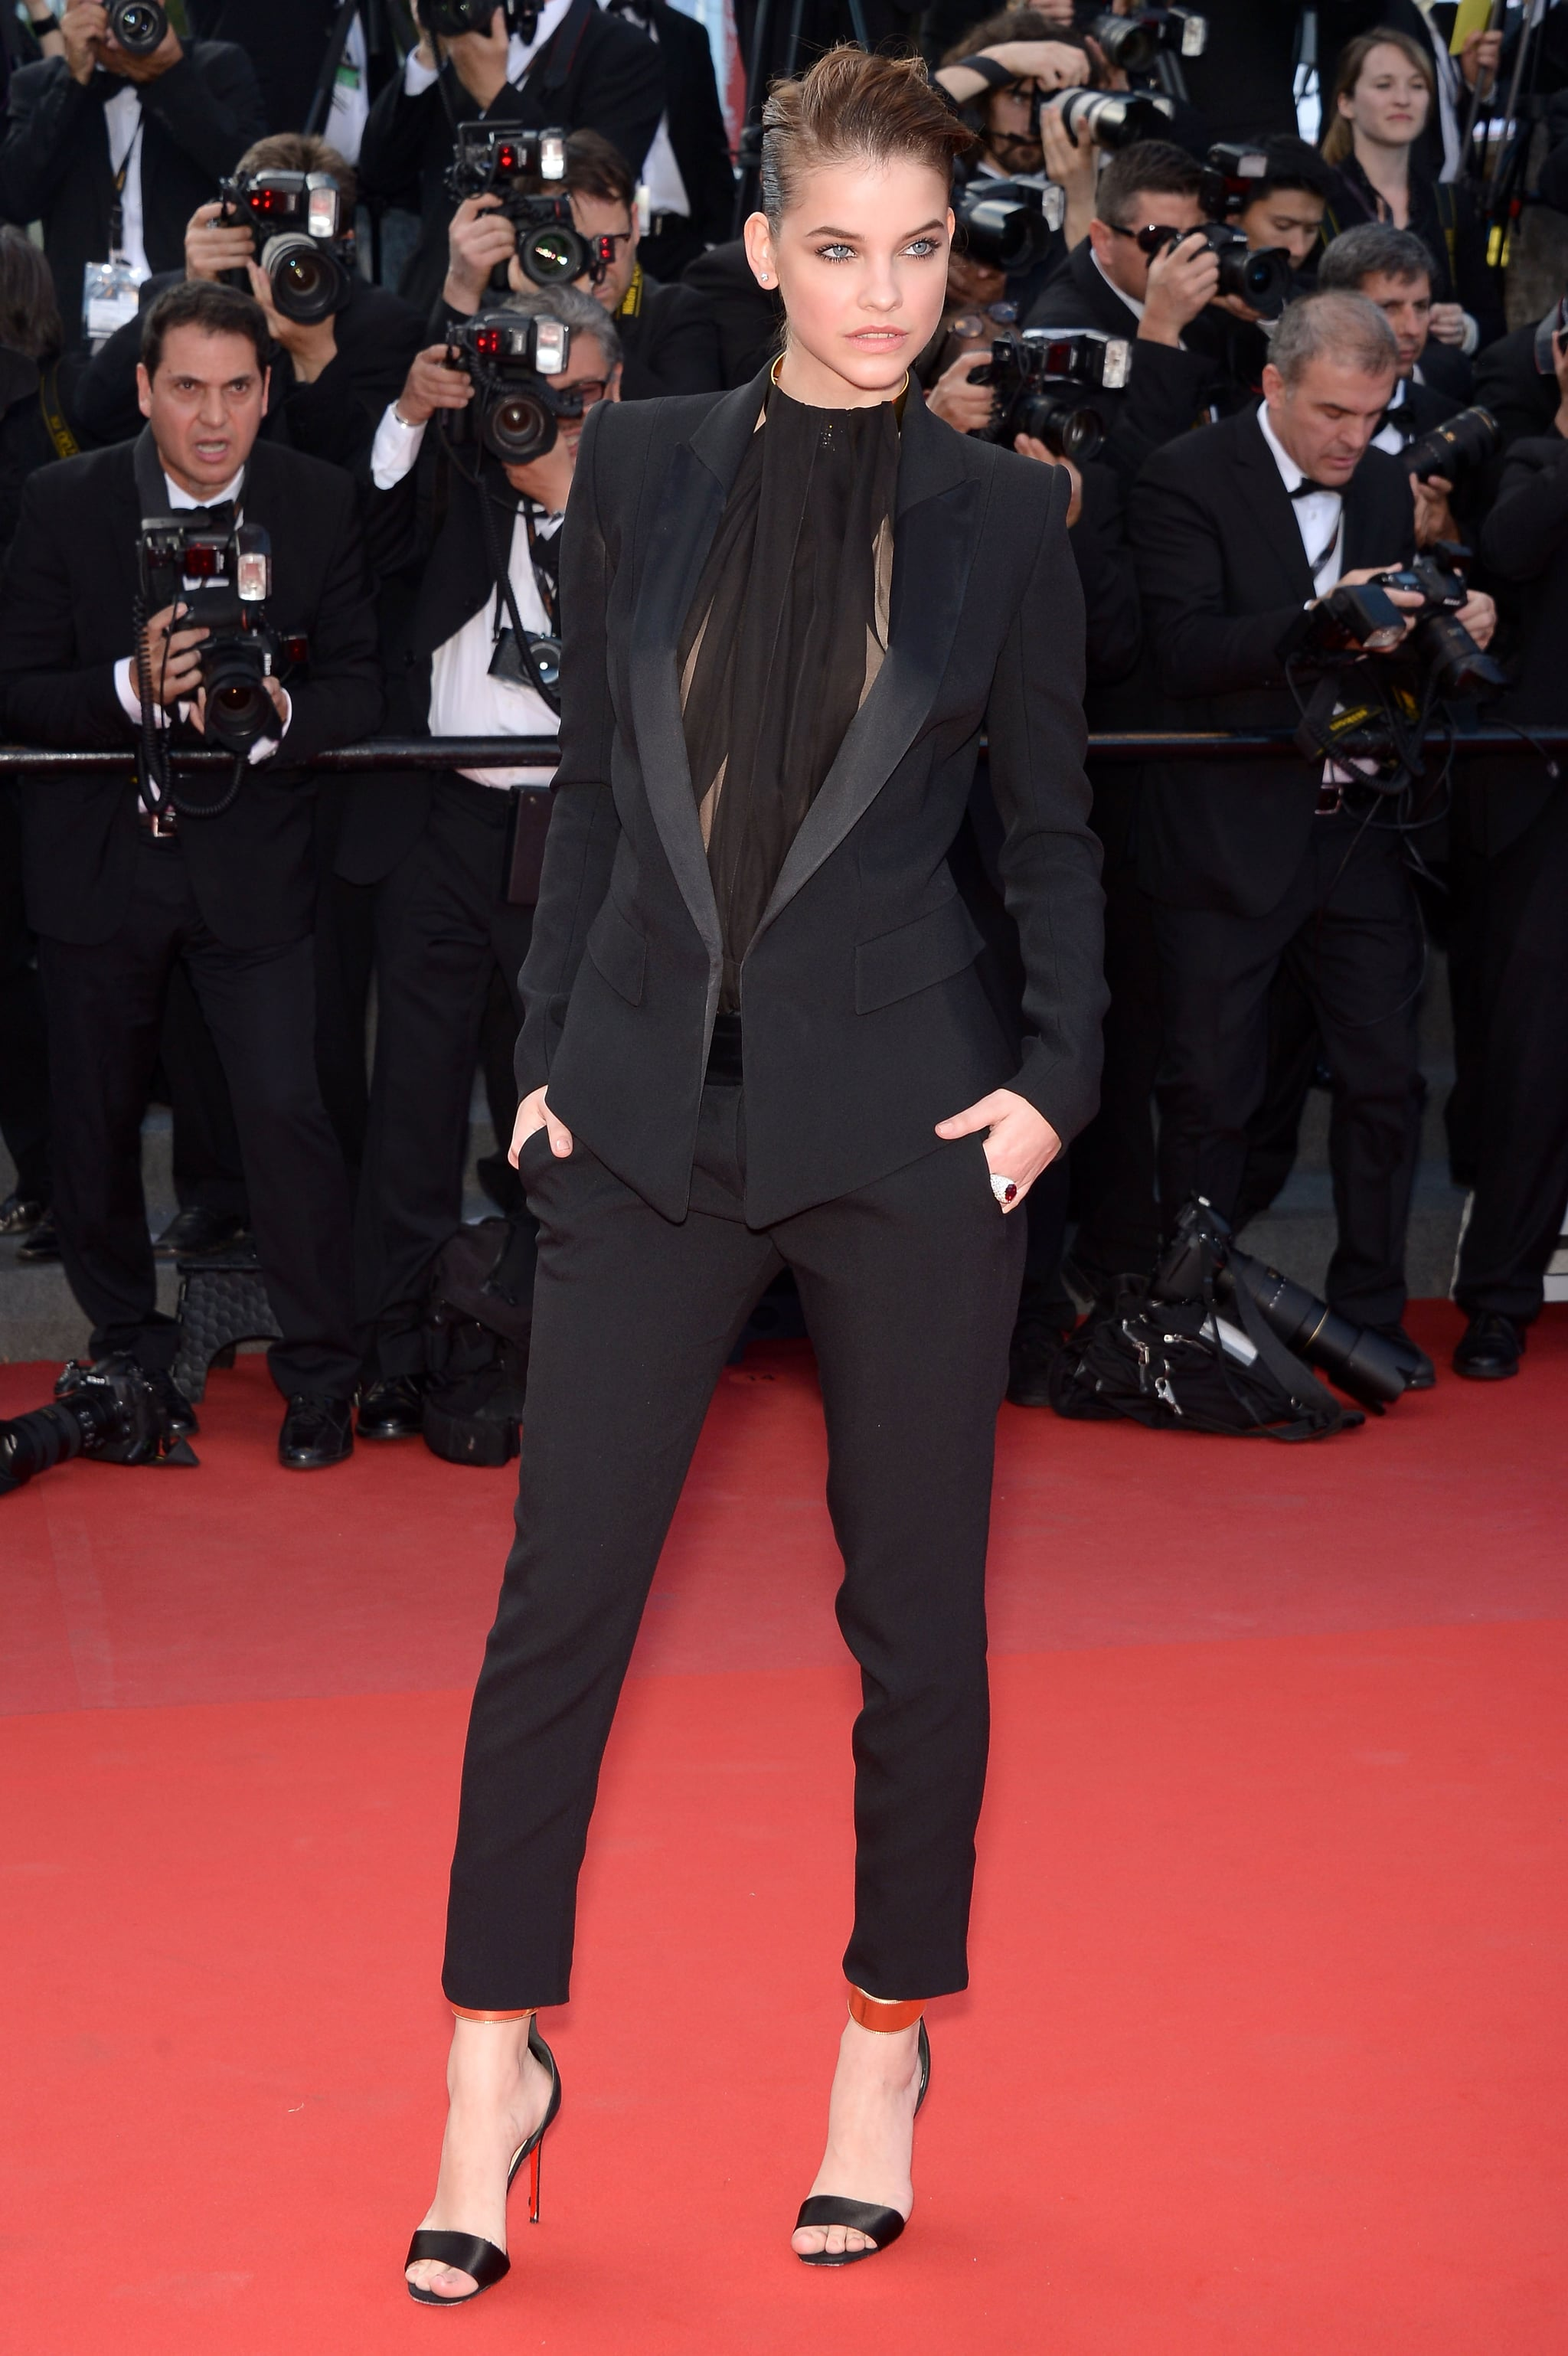 Barbara Palvin wore Alexandre Vauthier at the Cannes premiere of Cleopatra.